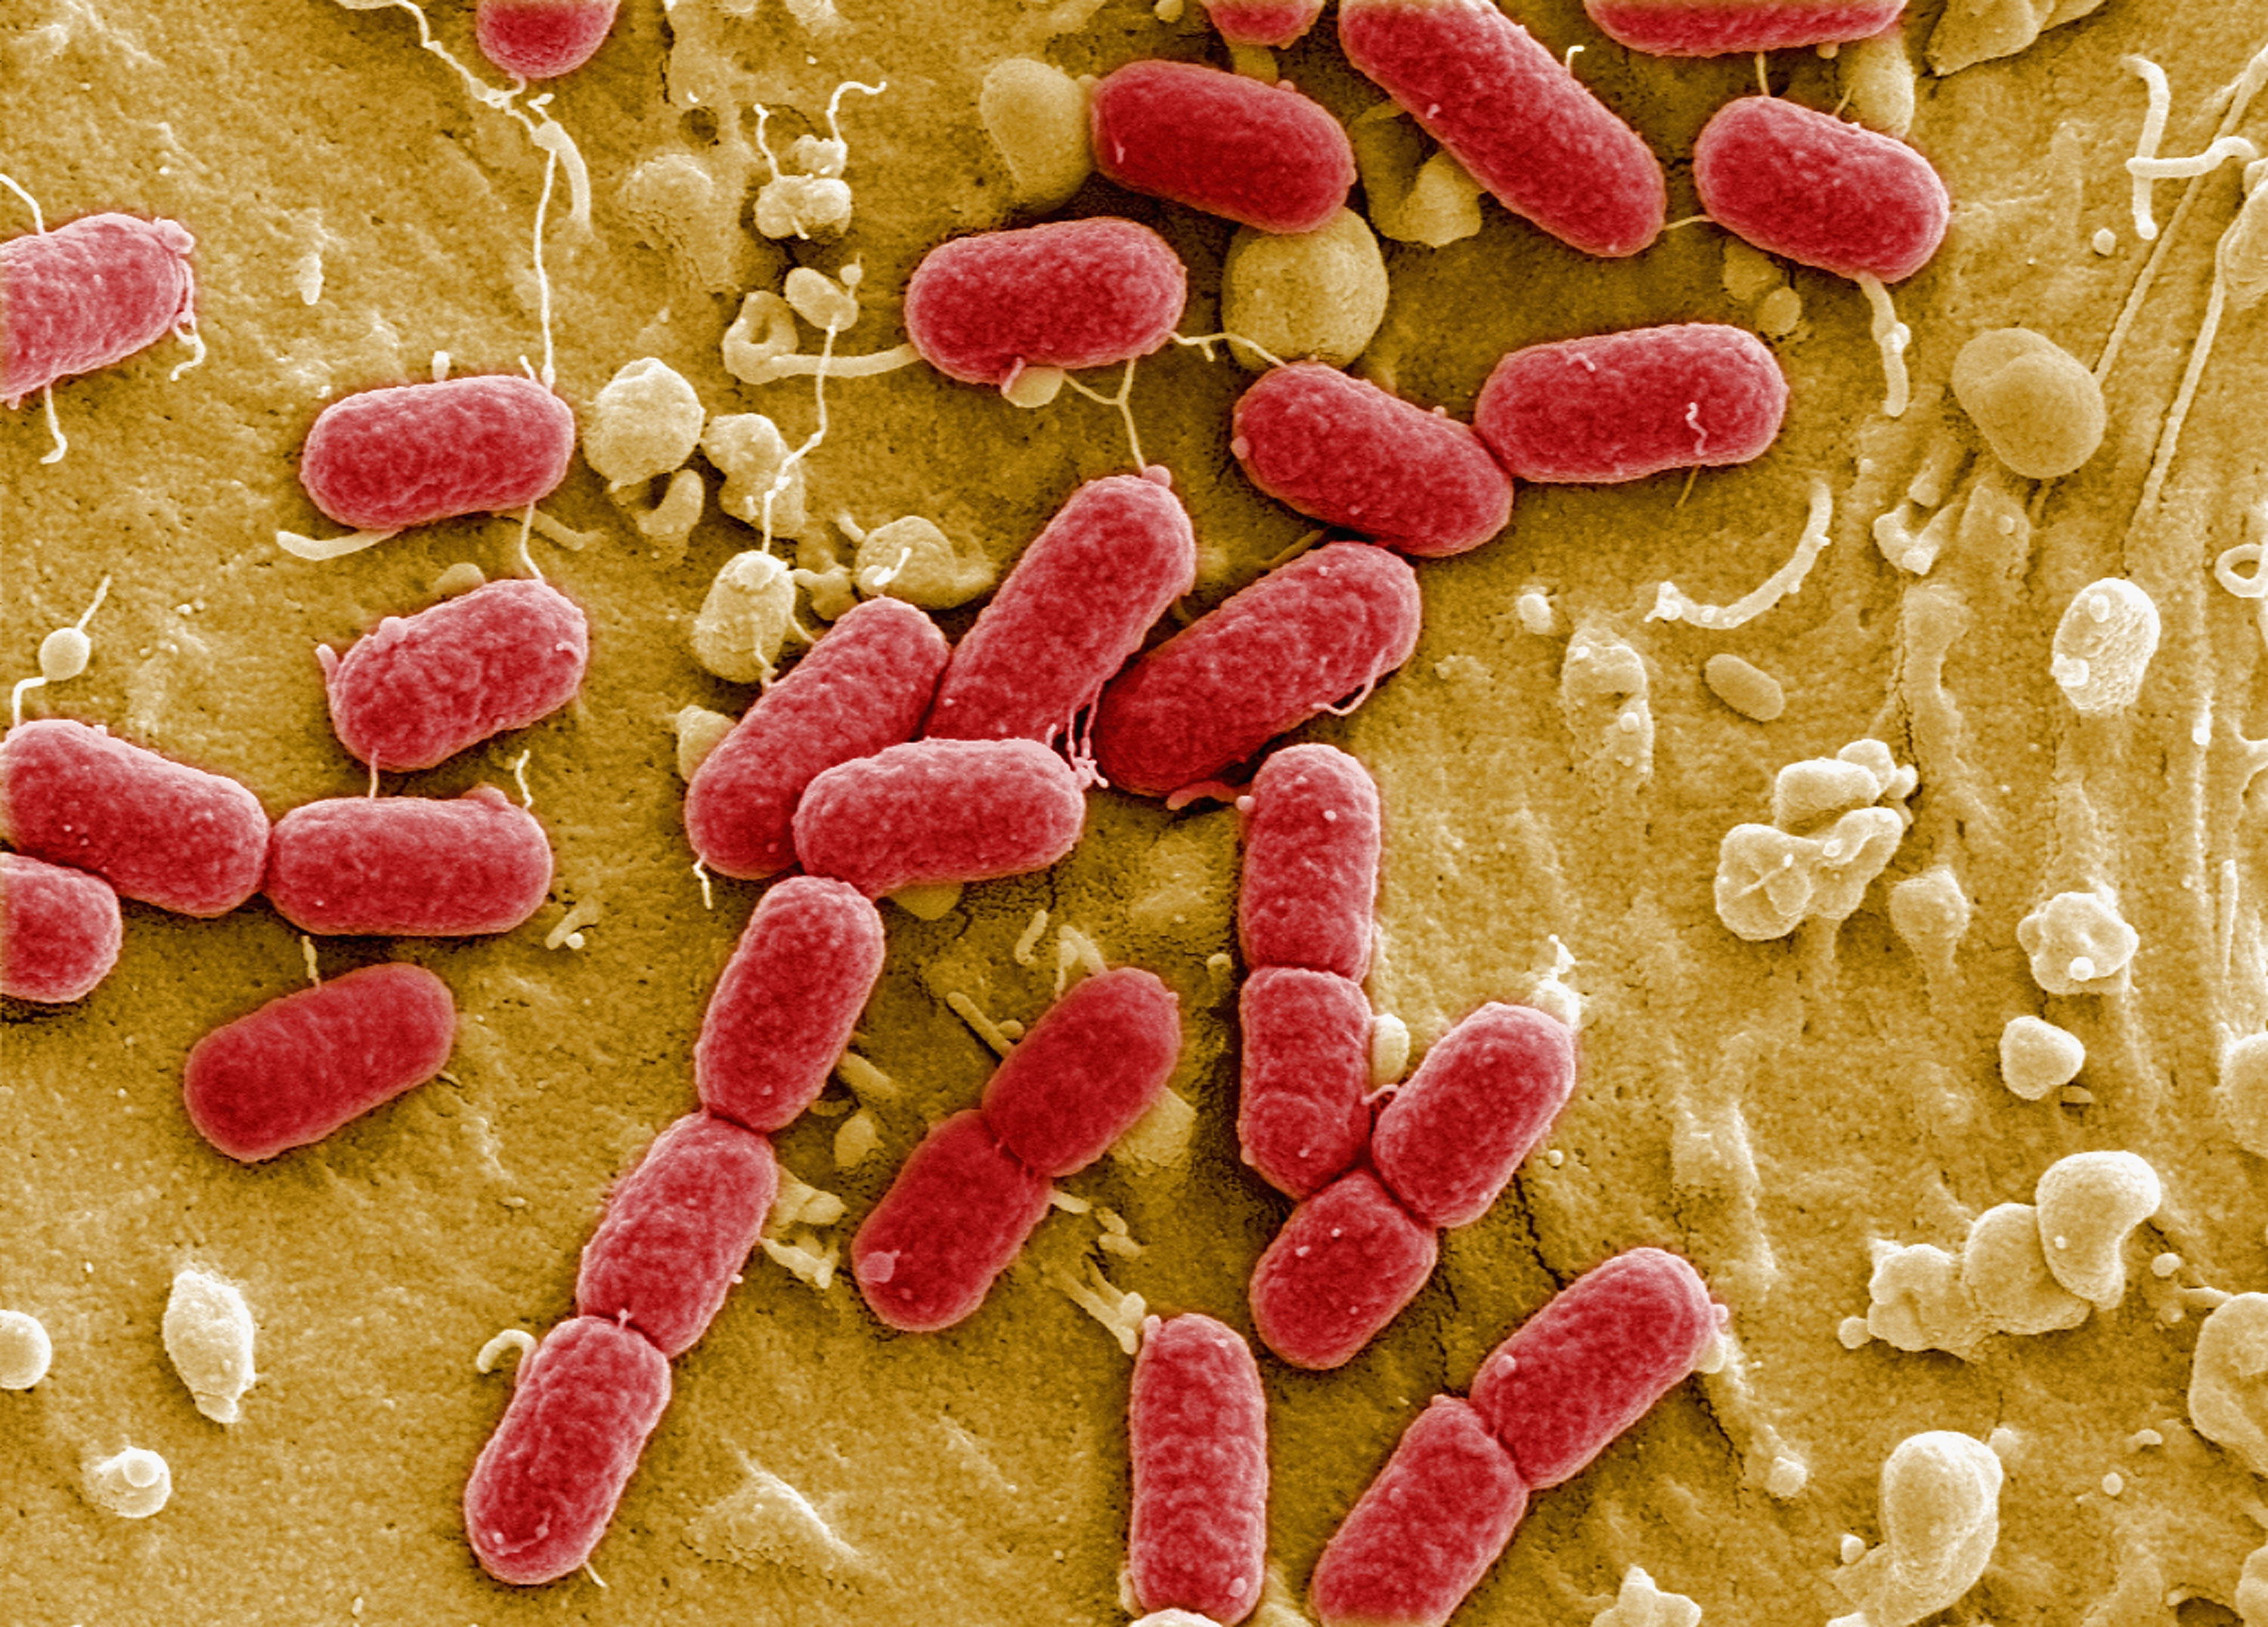 Any cool microorganisms out there to write about?